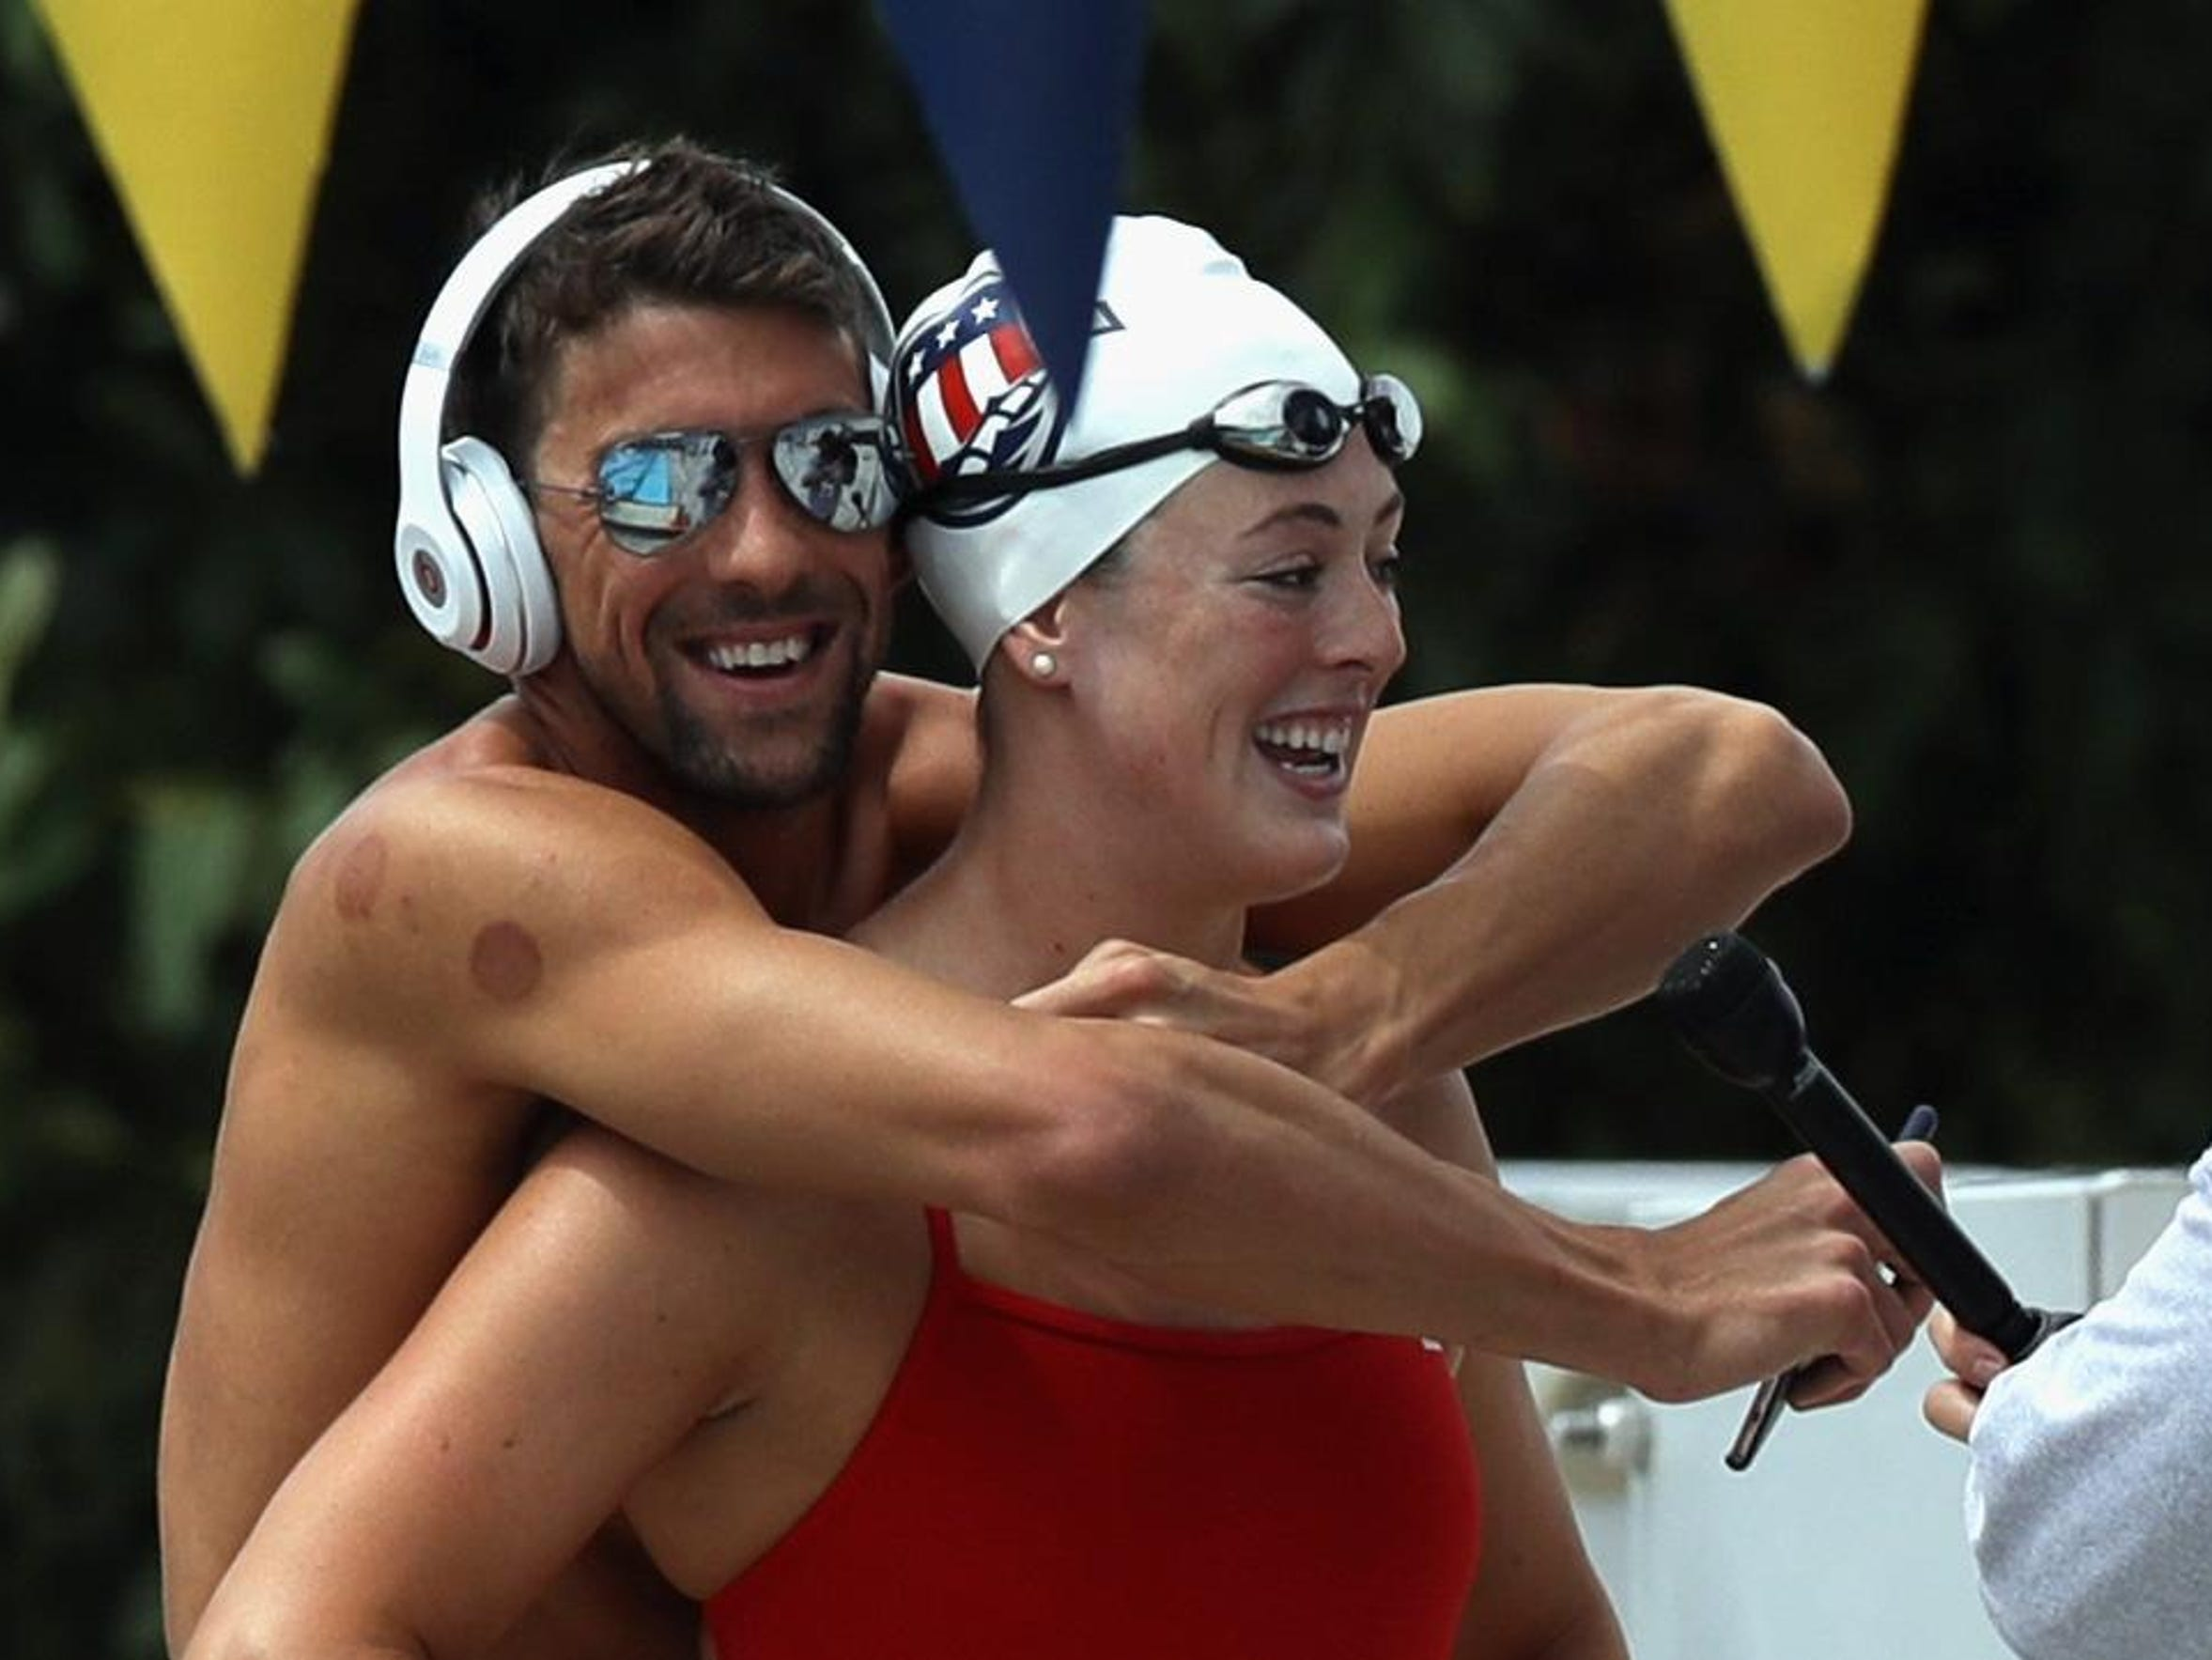 2016 U.S. Olympic Swimming Team Training Camp Media Day